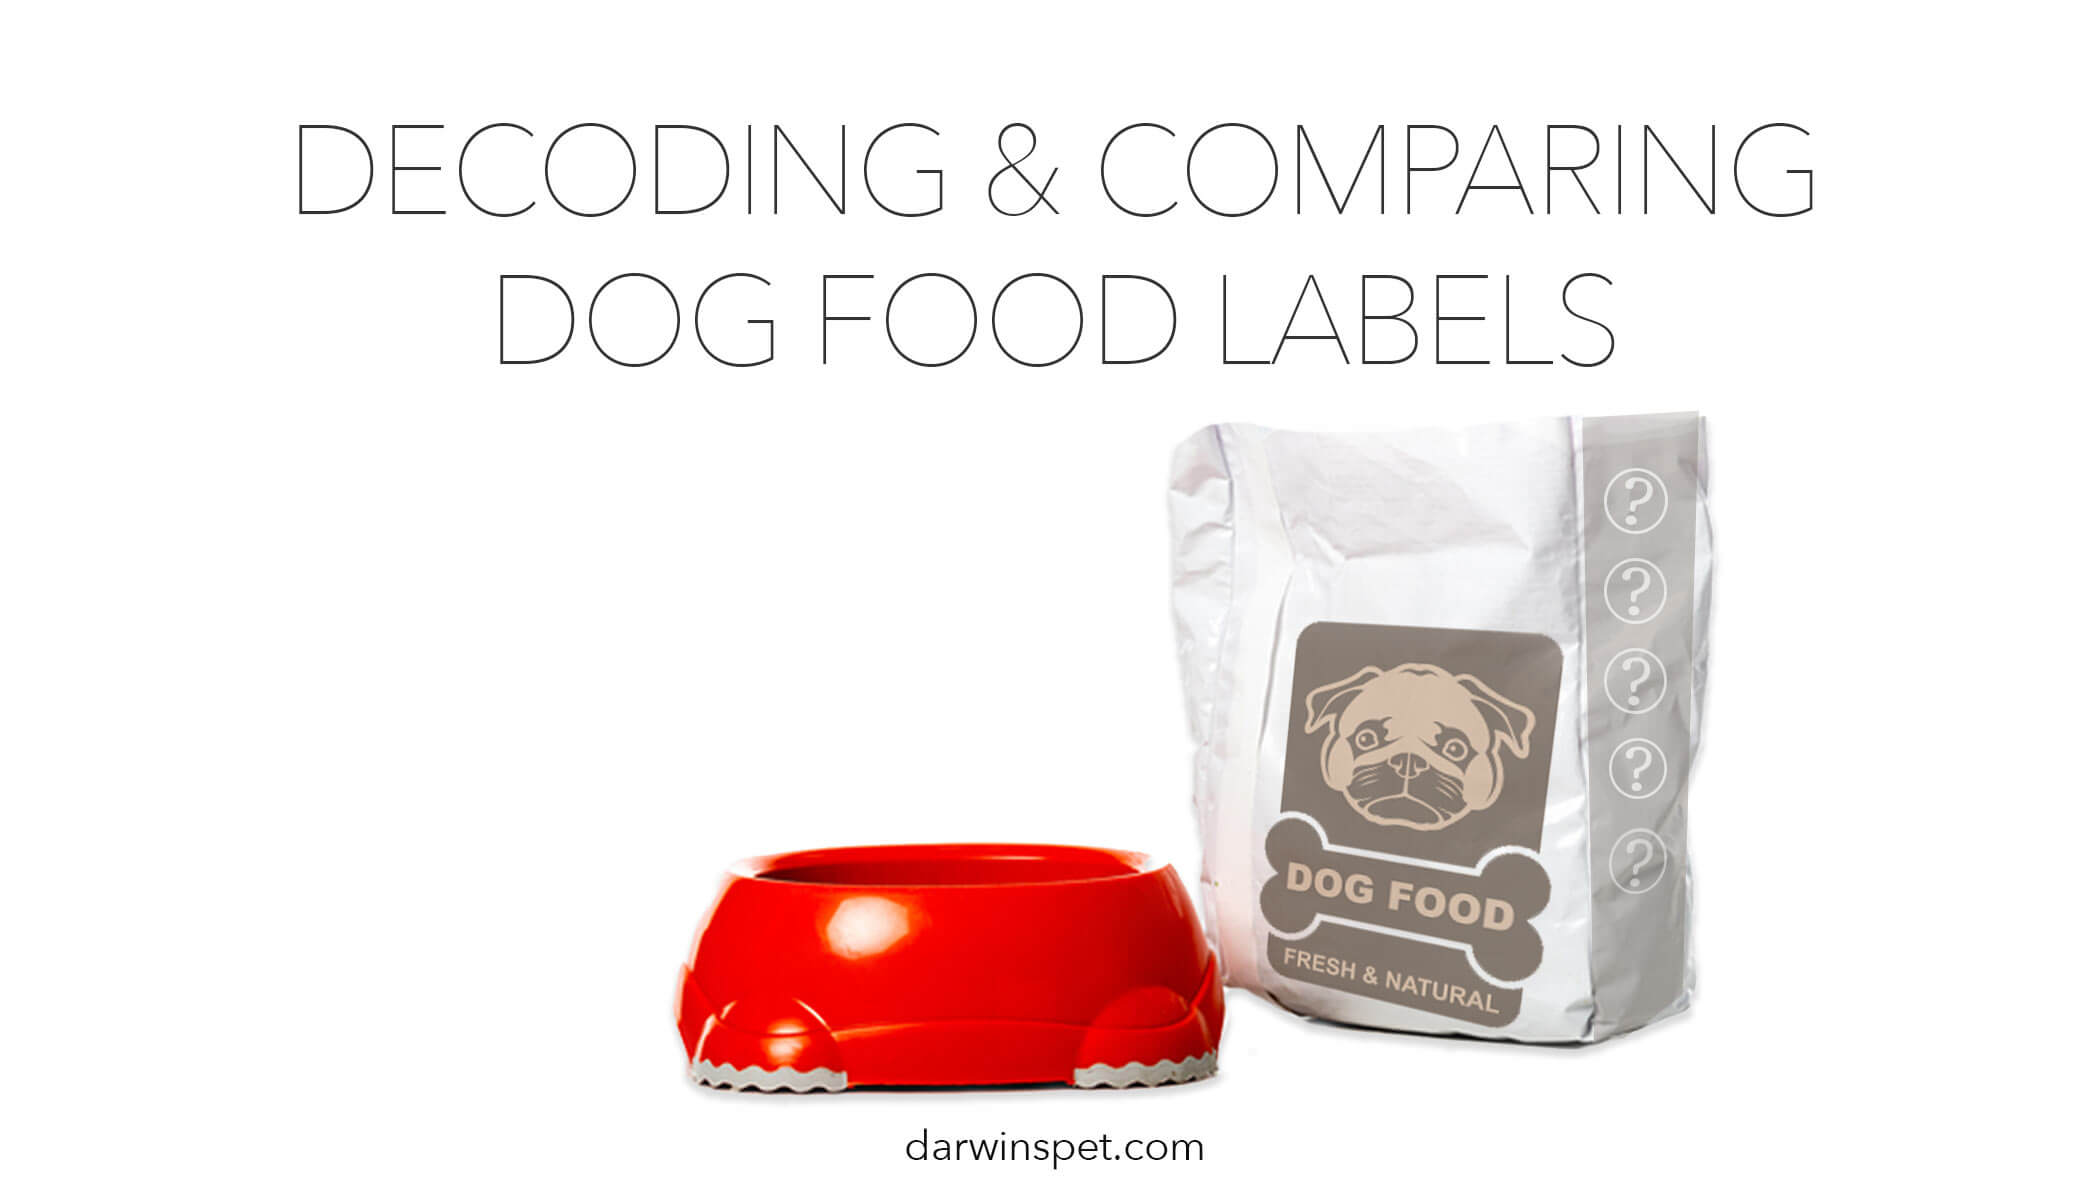 Decoding and Comparing Dog Food Labels